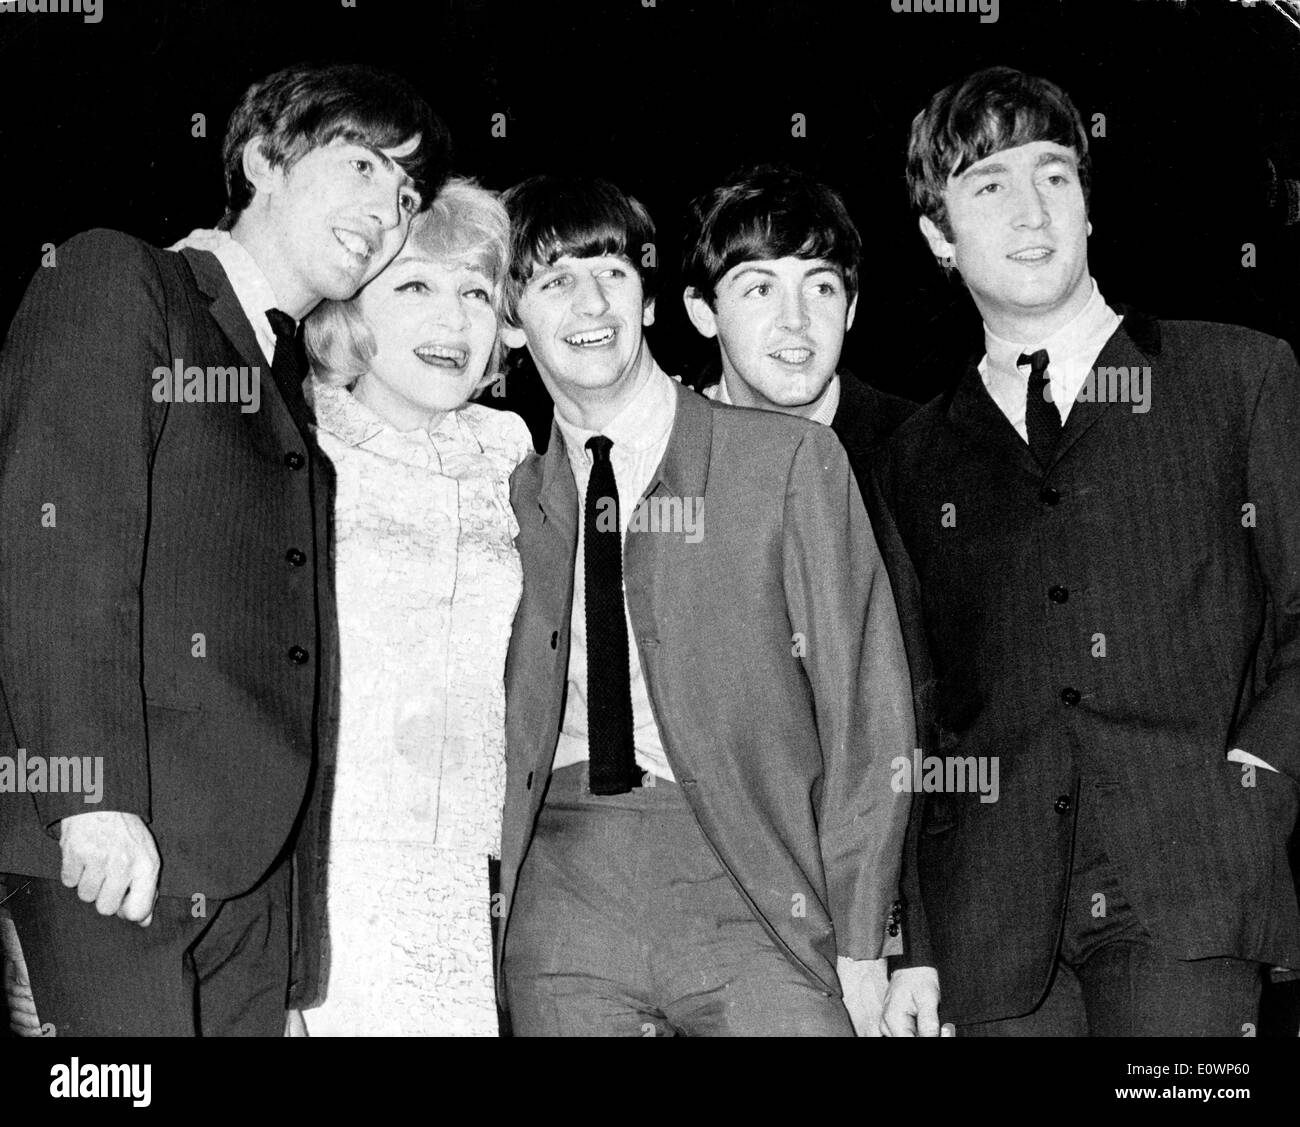 Marlene Dietrich meets the Beatles - Stock Image